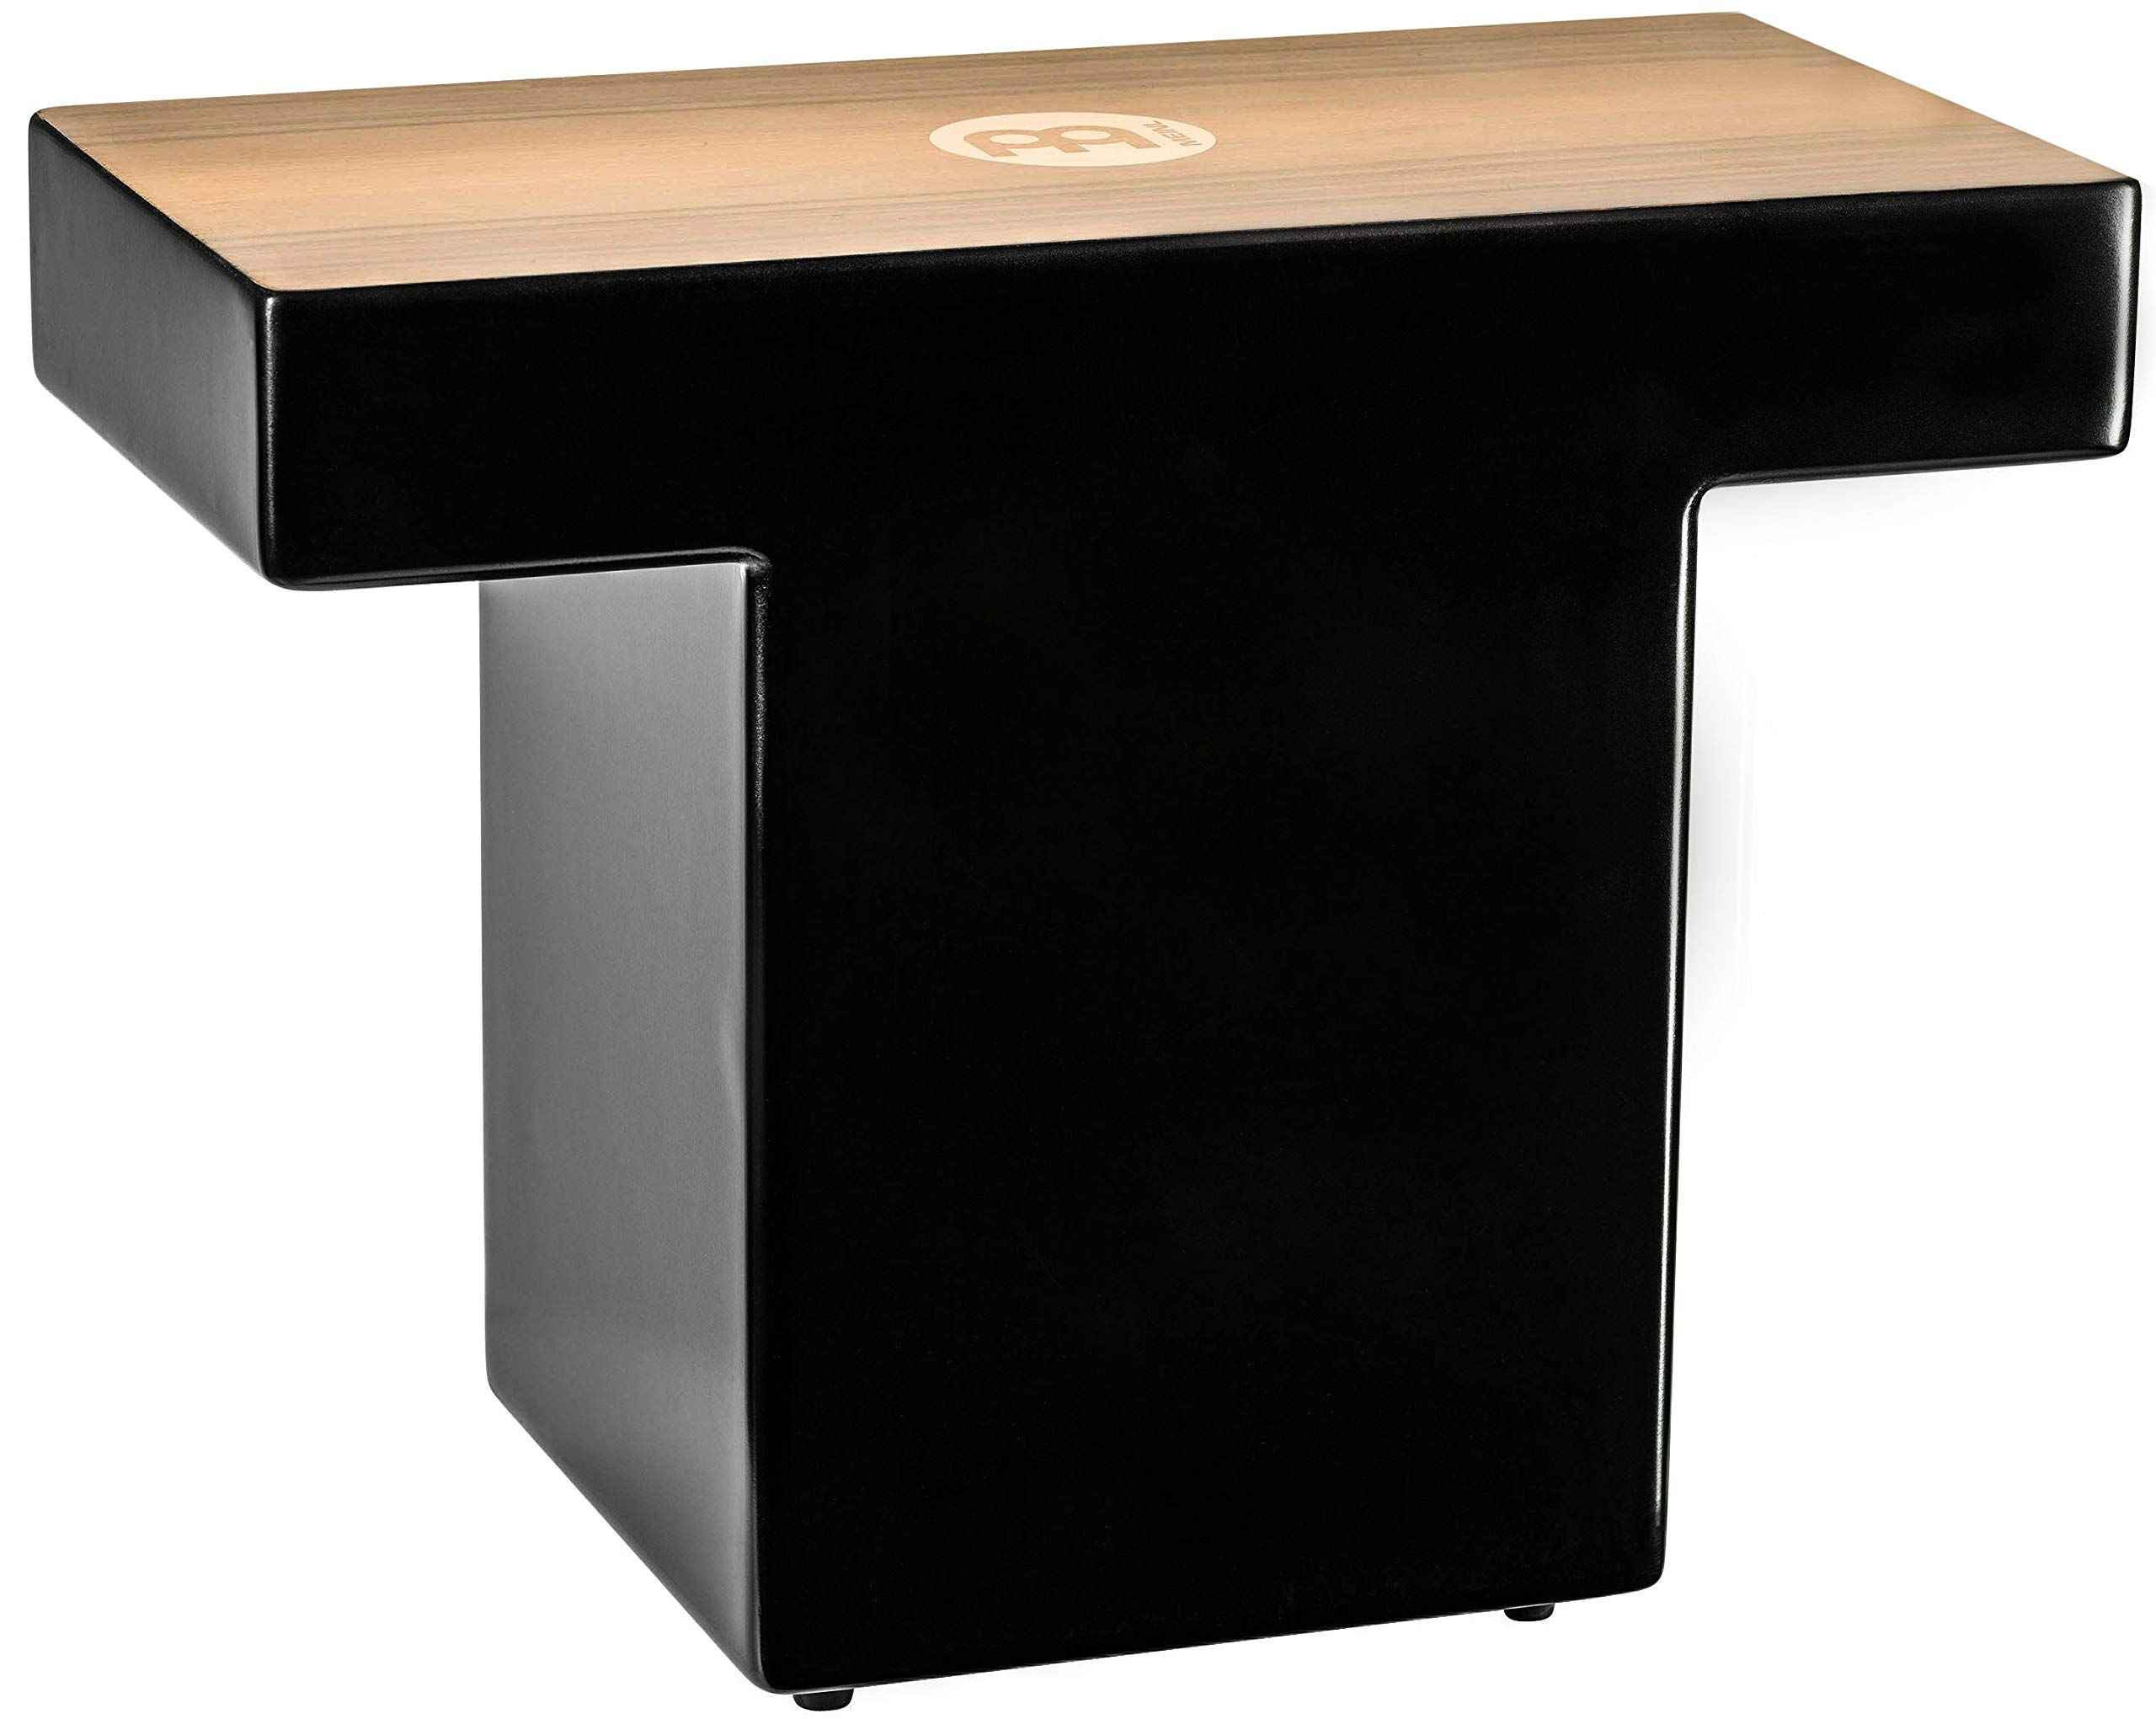 Meinl Pickup Slaptop Cajon Box Drum with Internal Snares and Forward Projecting Sound Ports -NOT MADE IN CHINA - Walnut Playing Surface, 2-YEAR WARRANTY (PTOPCAJ2WN) by Meinl Percussion (Image #2)